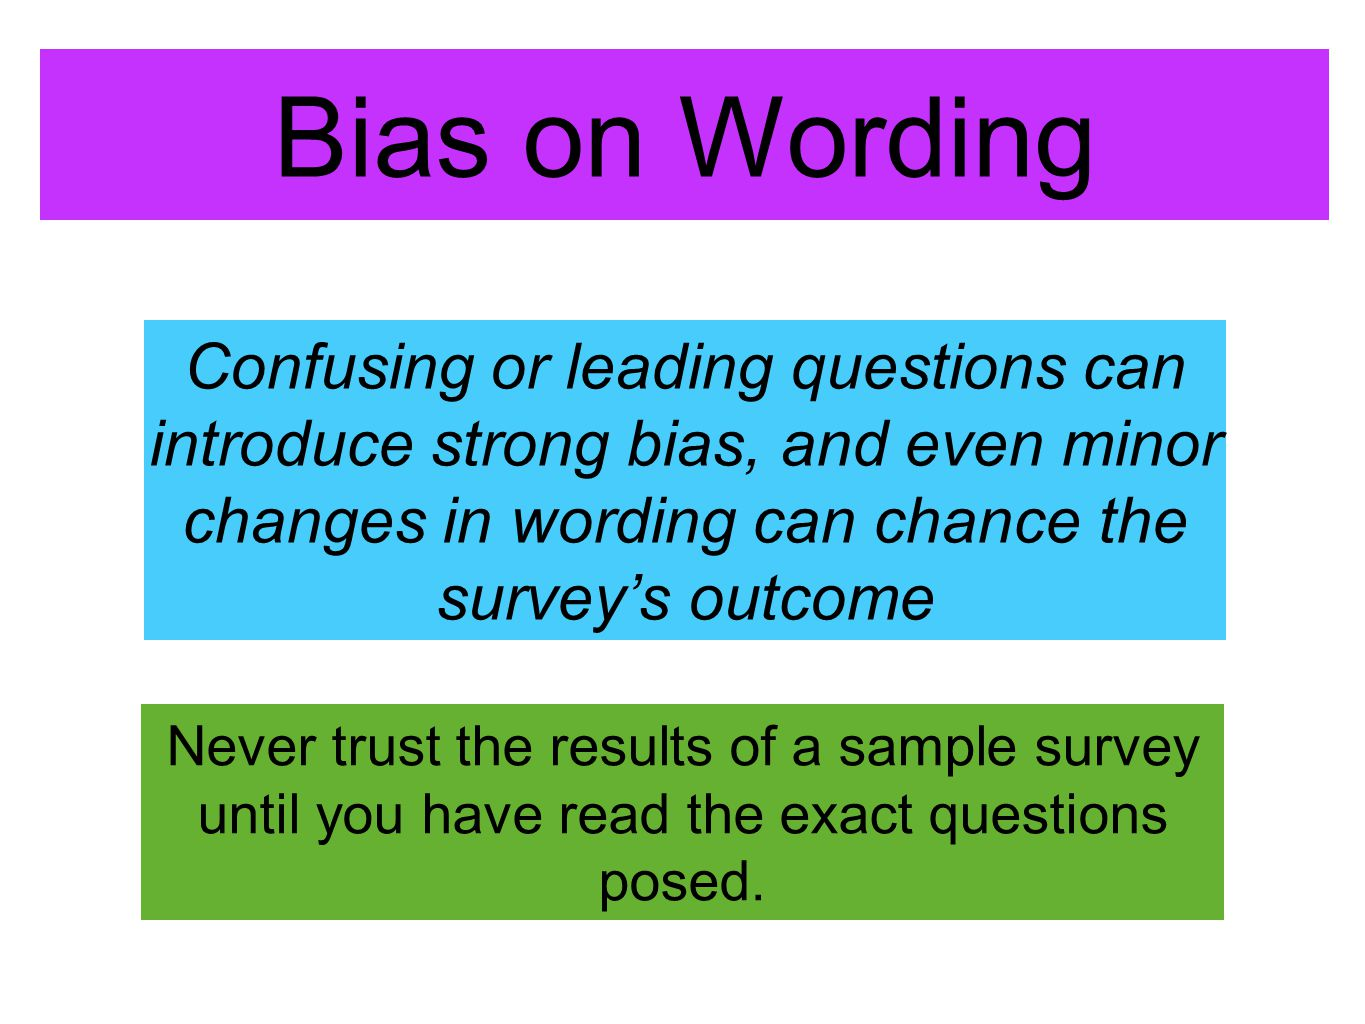 Bias on Wording Confusing or leading questions can introduce strong bias, and even minor changes in wording can chance the survey's outcome.